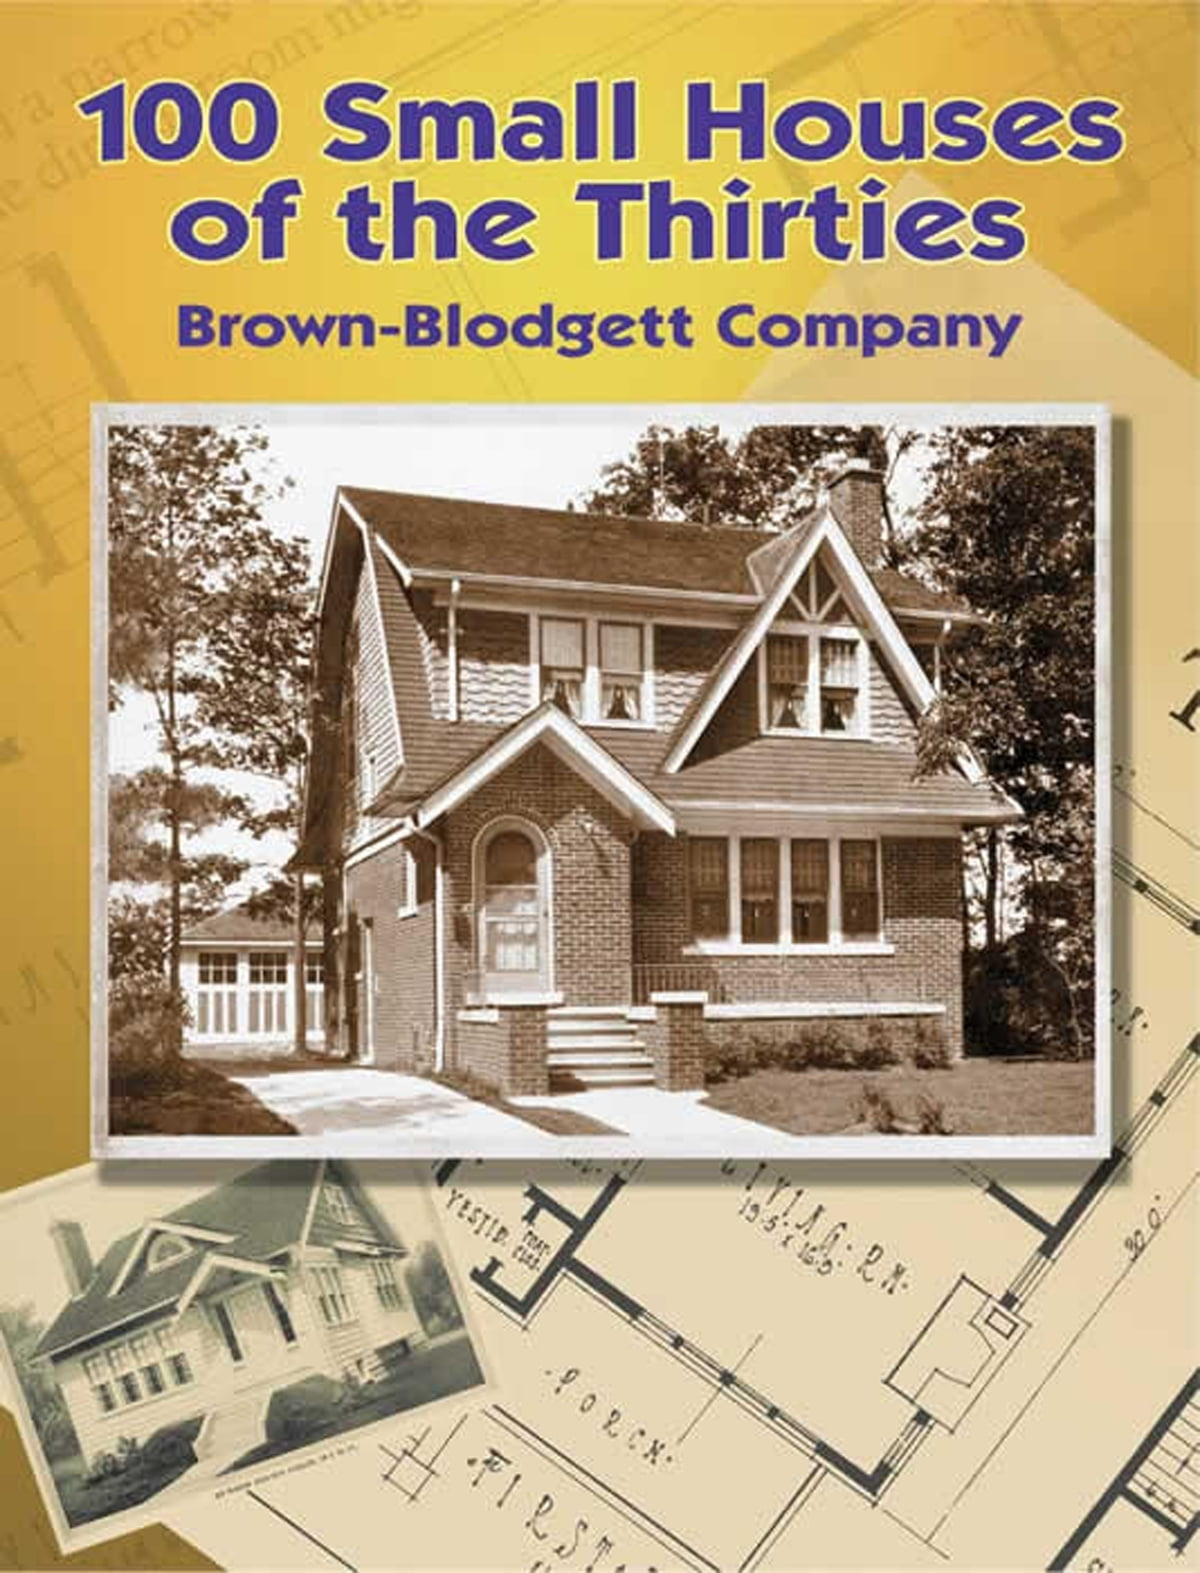 100 Small Houses of the Thirties eBook by Brown-Blodgett Company -  9780486146690 | Rakuten Kobo